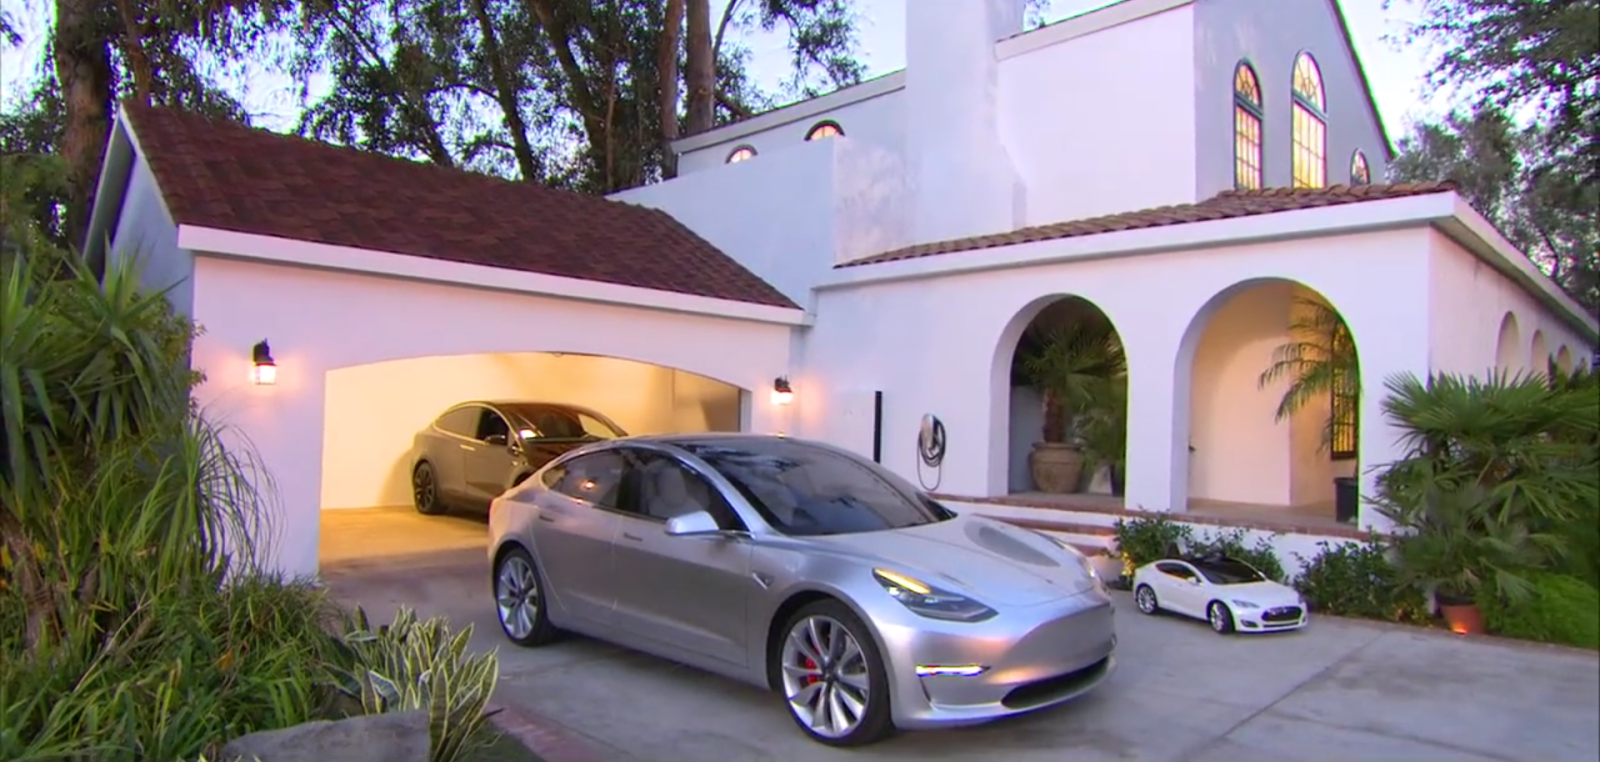 Tesla Has Yet To Disclose The Battery Pack Options That Will Be Available For The Upcoming Tesla Model 3 And Enabled Th Tesla Solar Roof Solar Roof Tesla Model